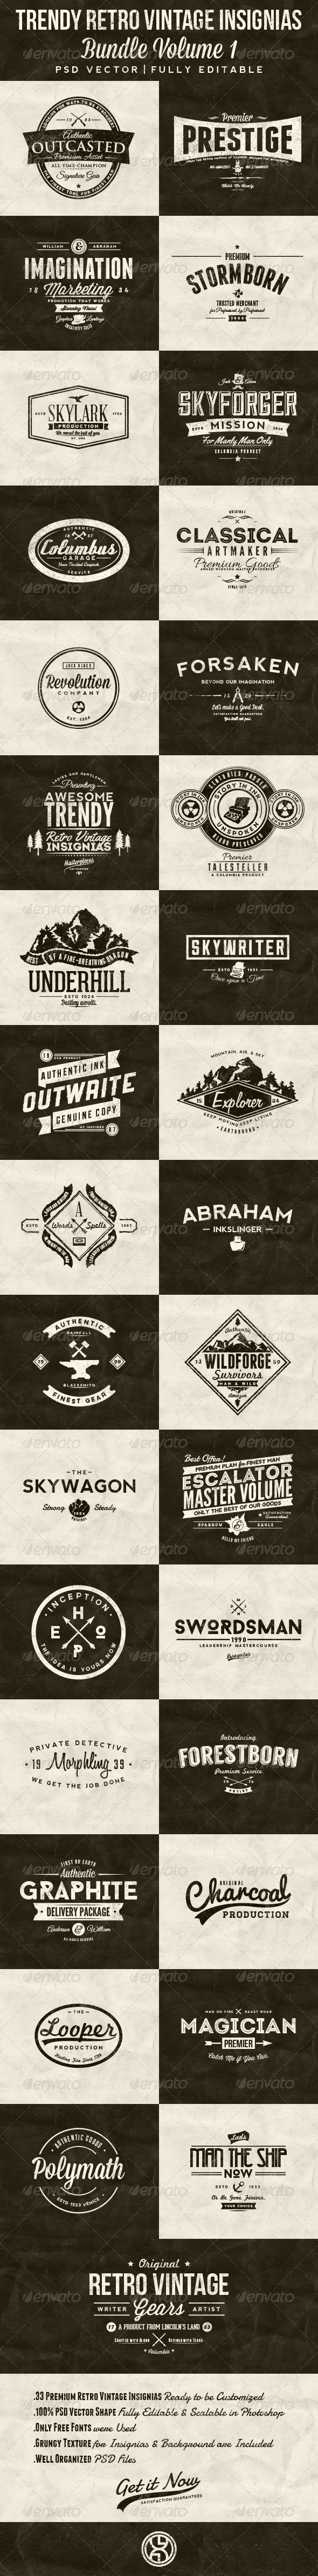 GraphicRiver 33 Trendy Retro Vintage Insignias Bundle Volume 1 7522214